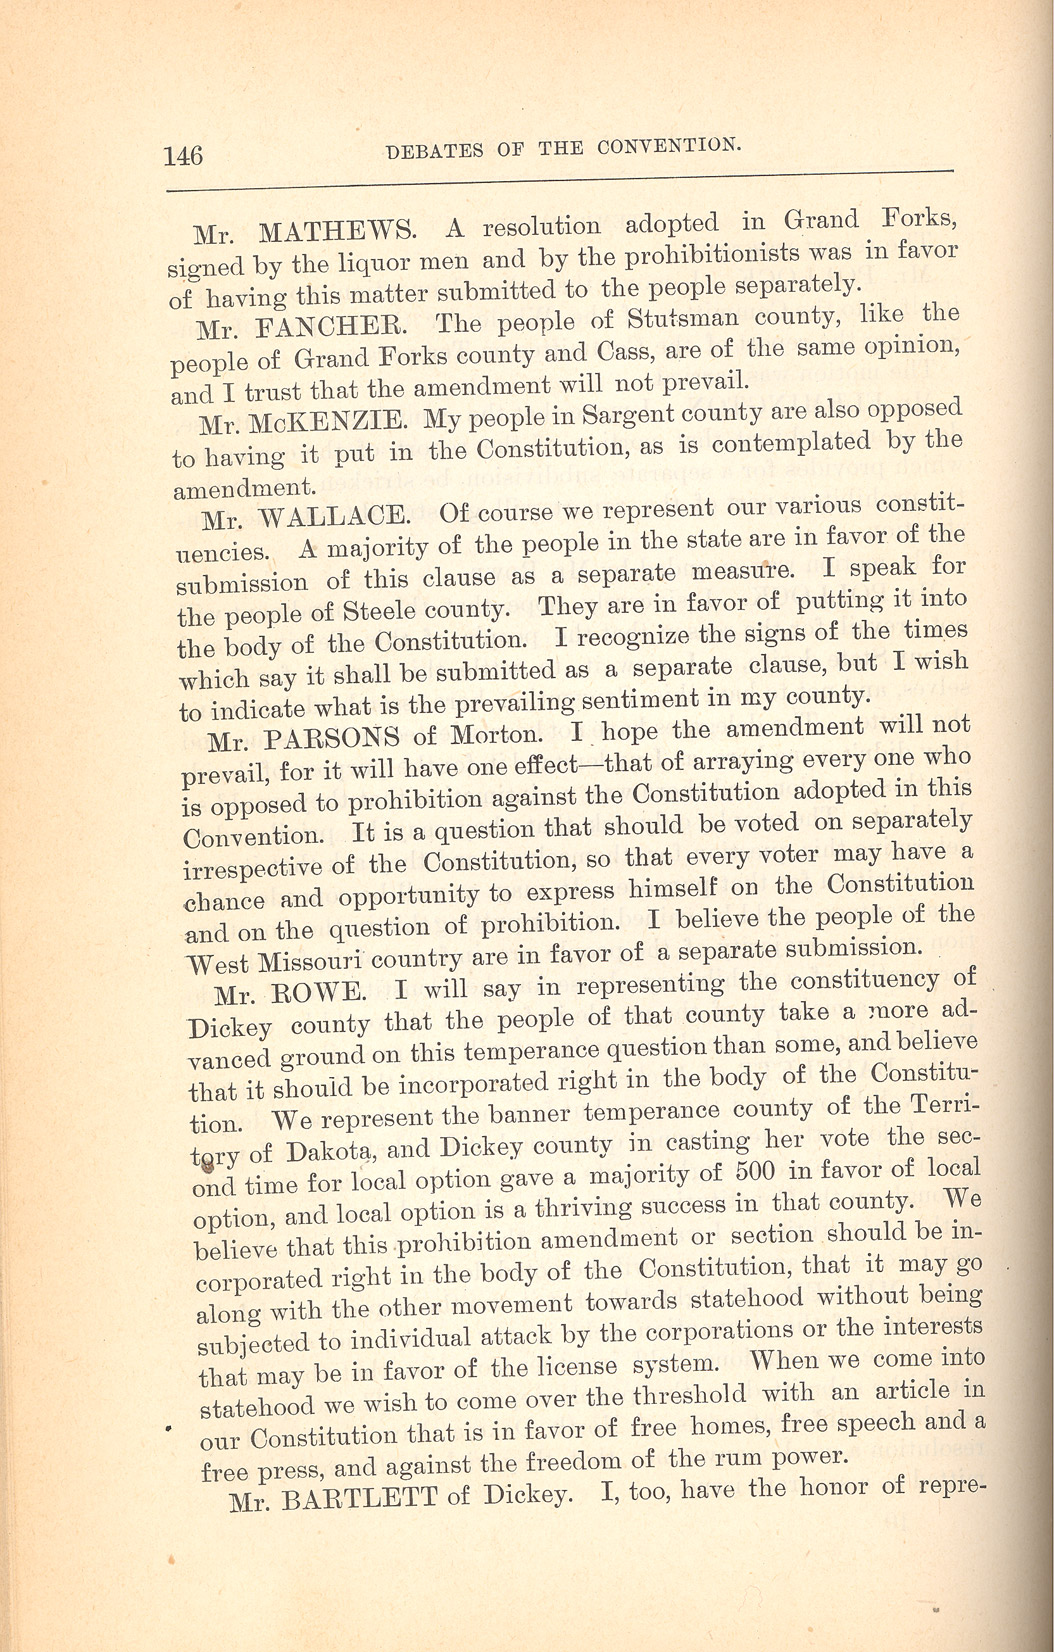 section 2 the constitutional convention and the debates north the delegates to the constitutional convention debated two issues concerning prohibition or temperance as it